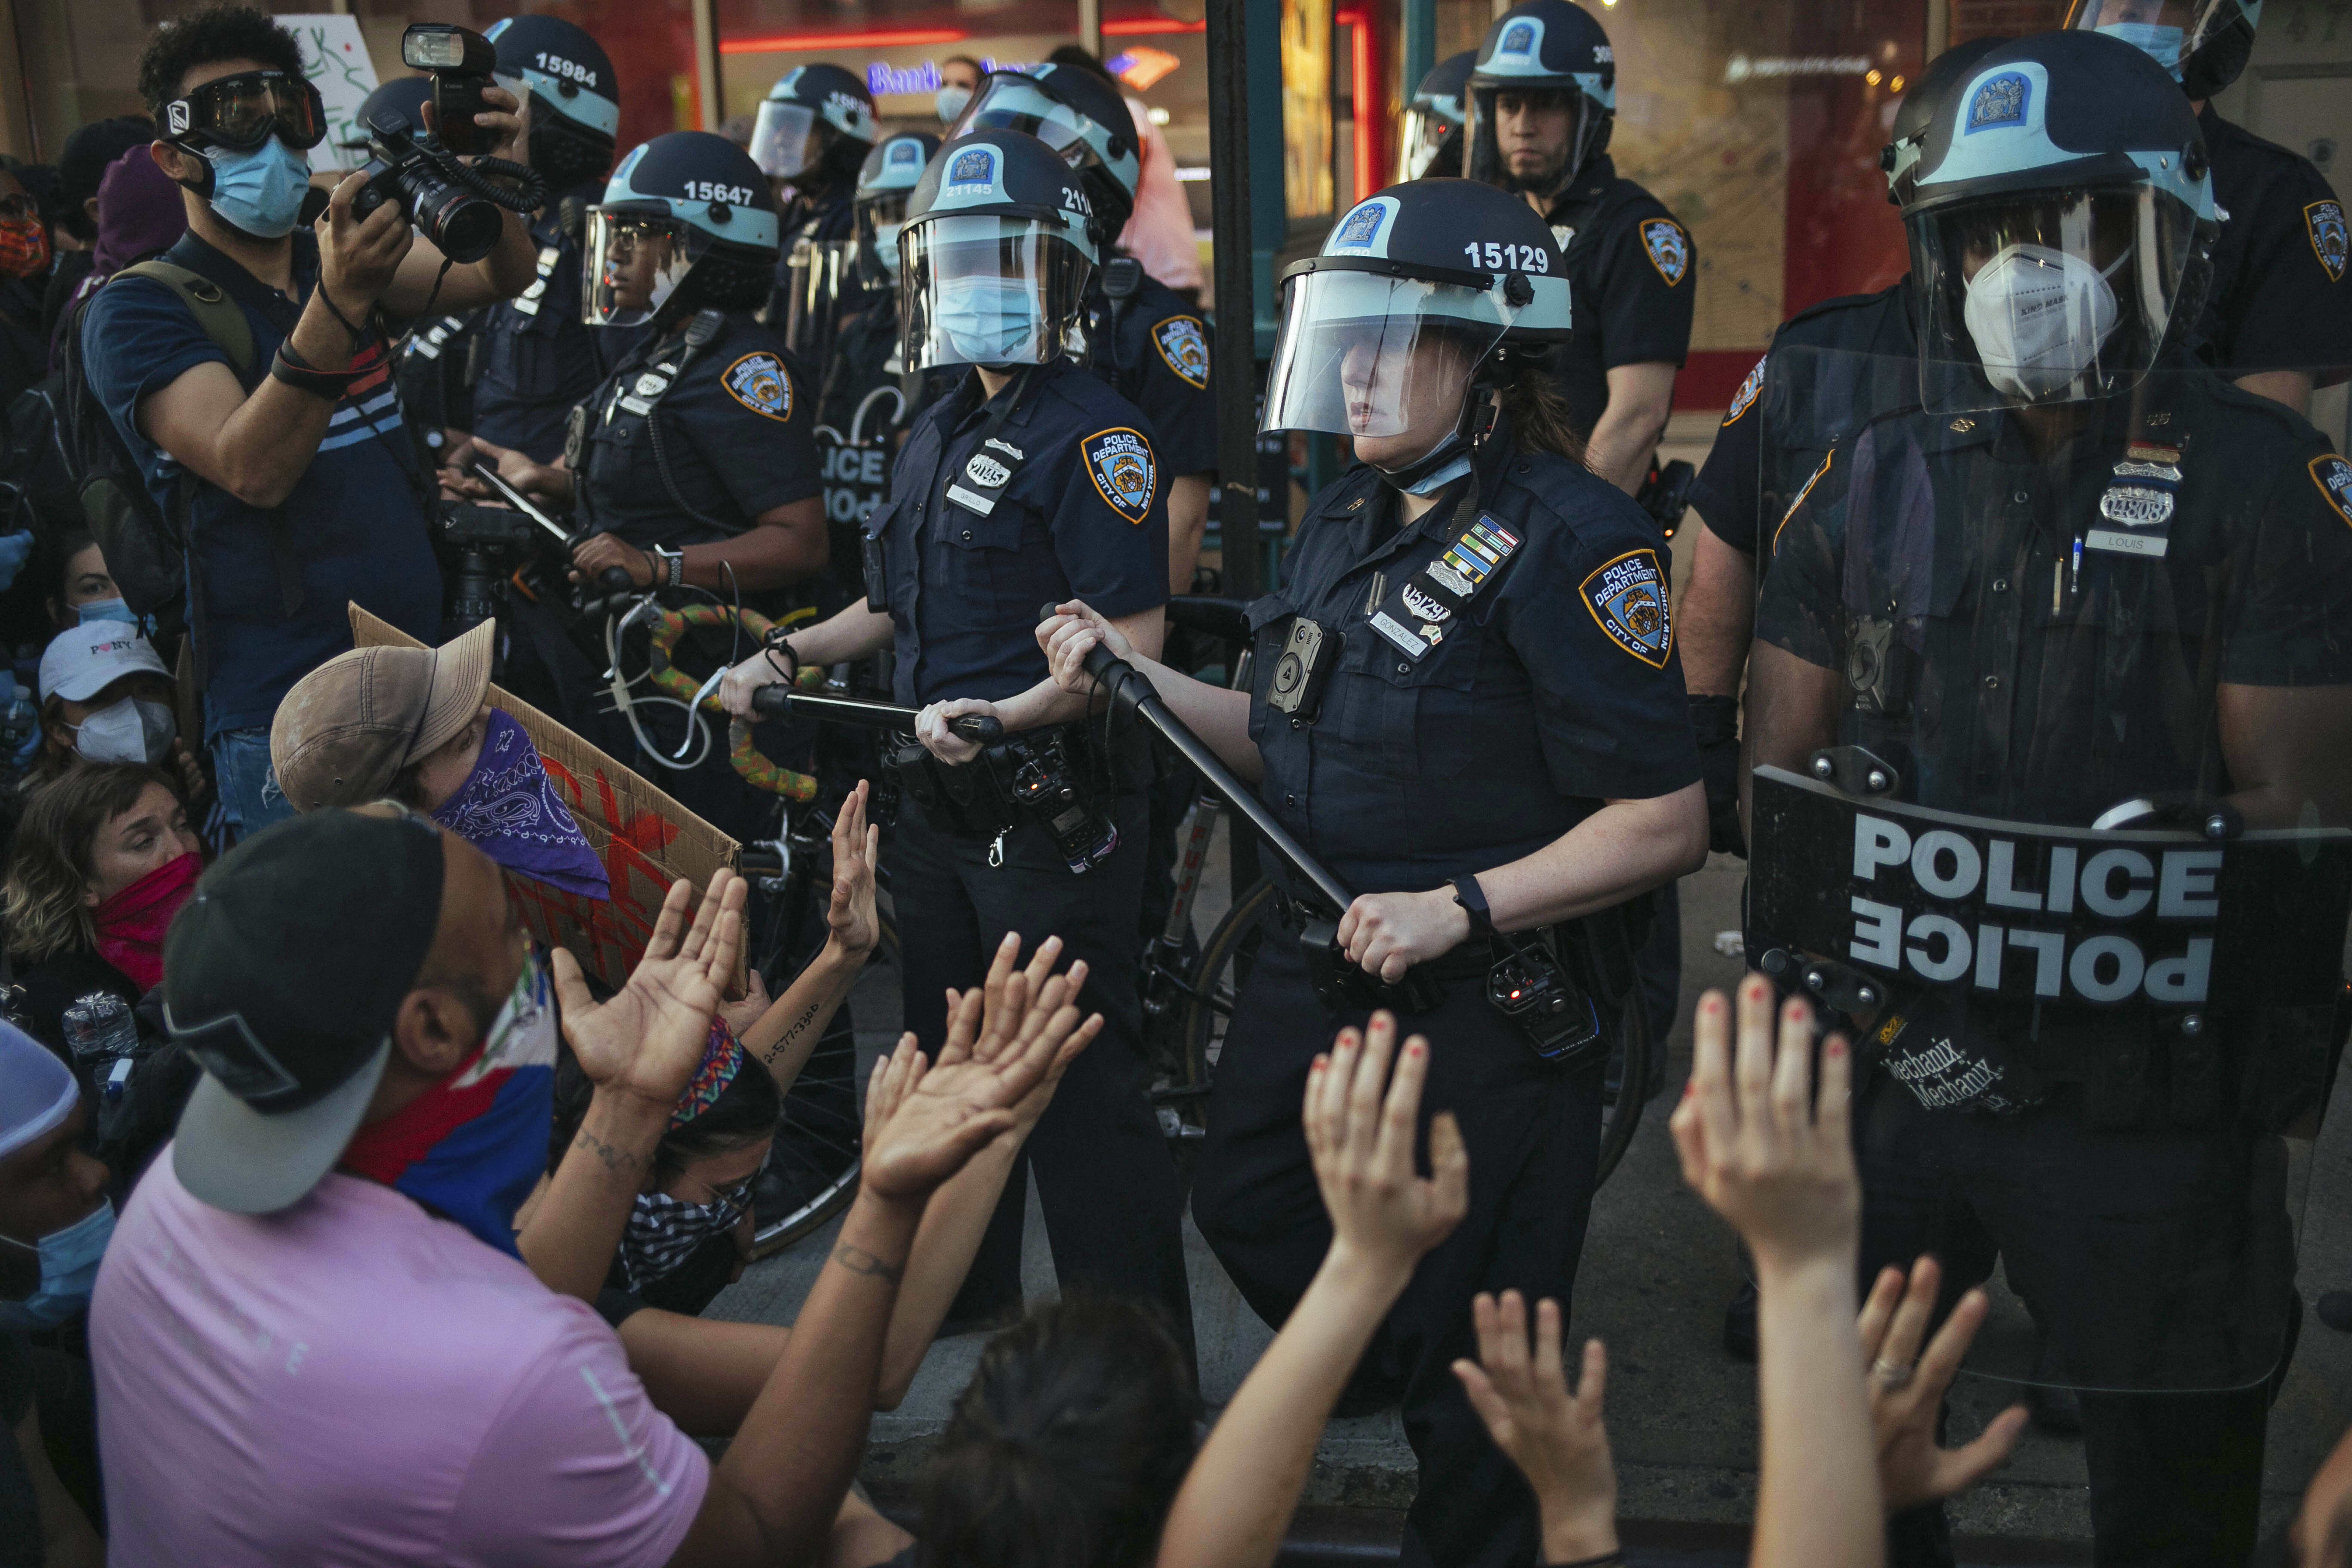 This May 31, 2020 file photo shows New York City Police facing off with activists during a protest march in the Bedford-Stuyvesant section of the Brooklyn borough of New York.